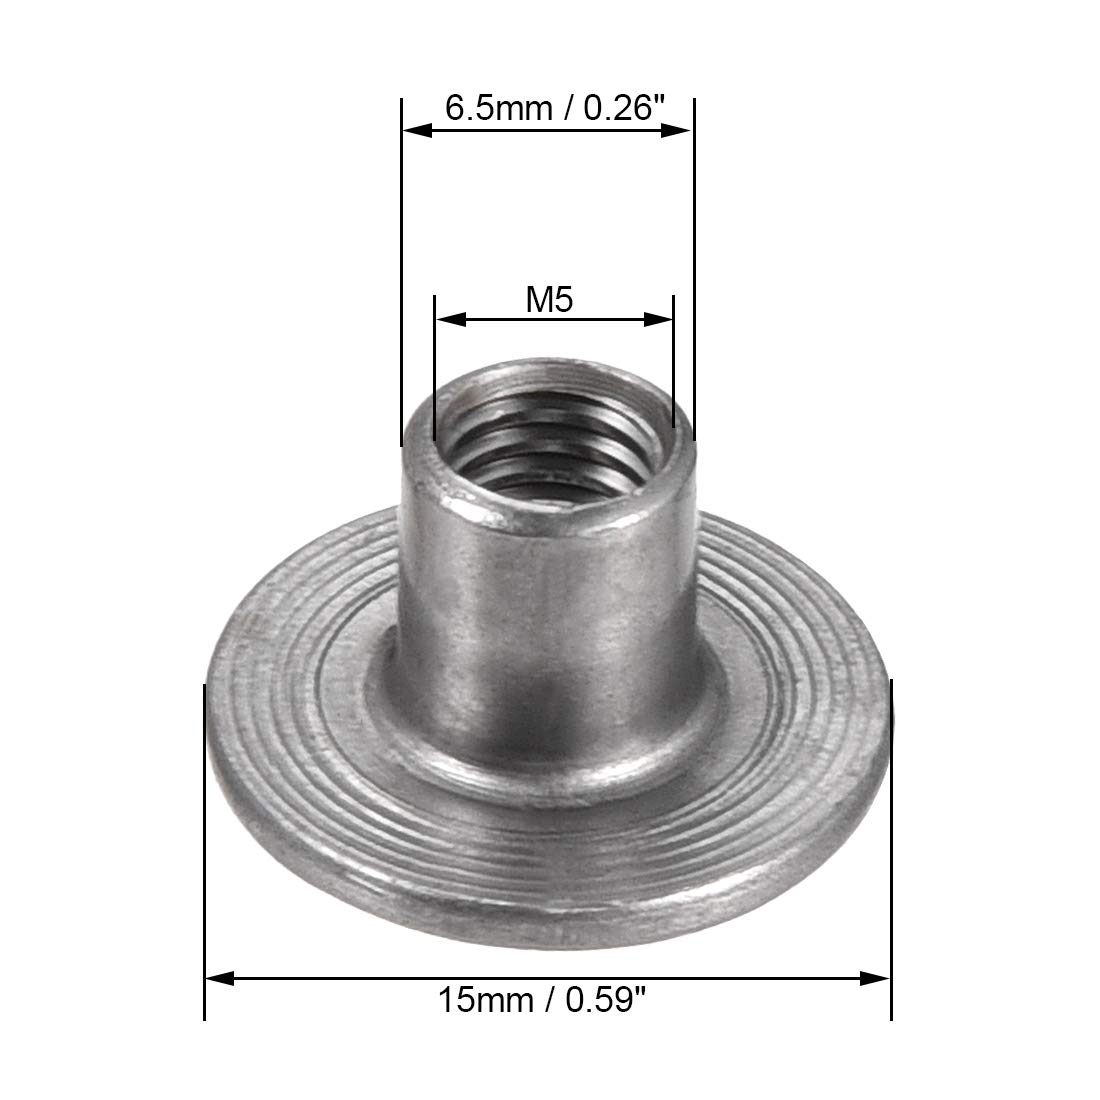 uxcell 30Pcs M10x25x1.6mm Brad Hole Tee Nut Carbon Steel Round Base Screw-in T-Nut